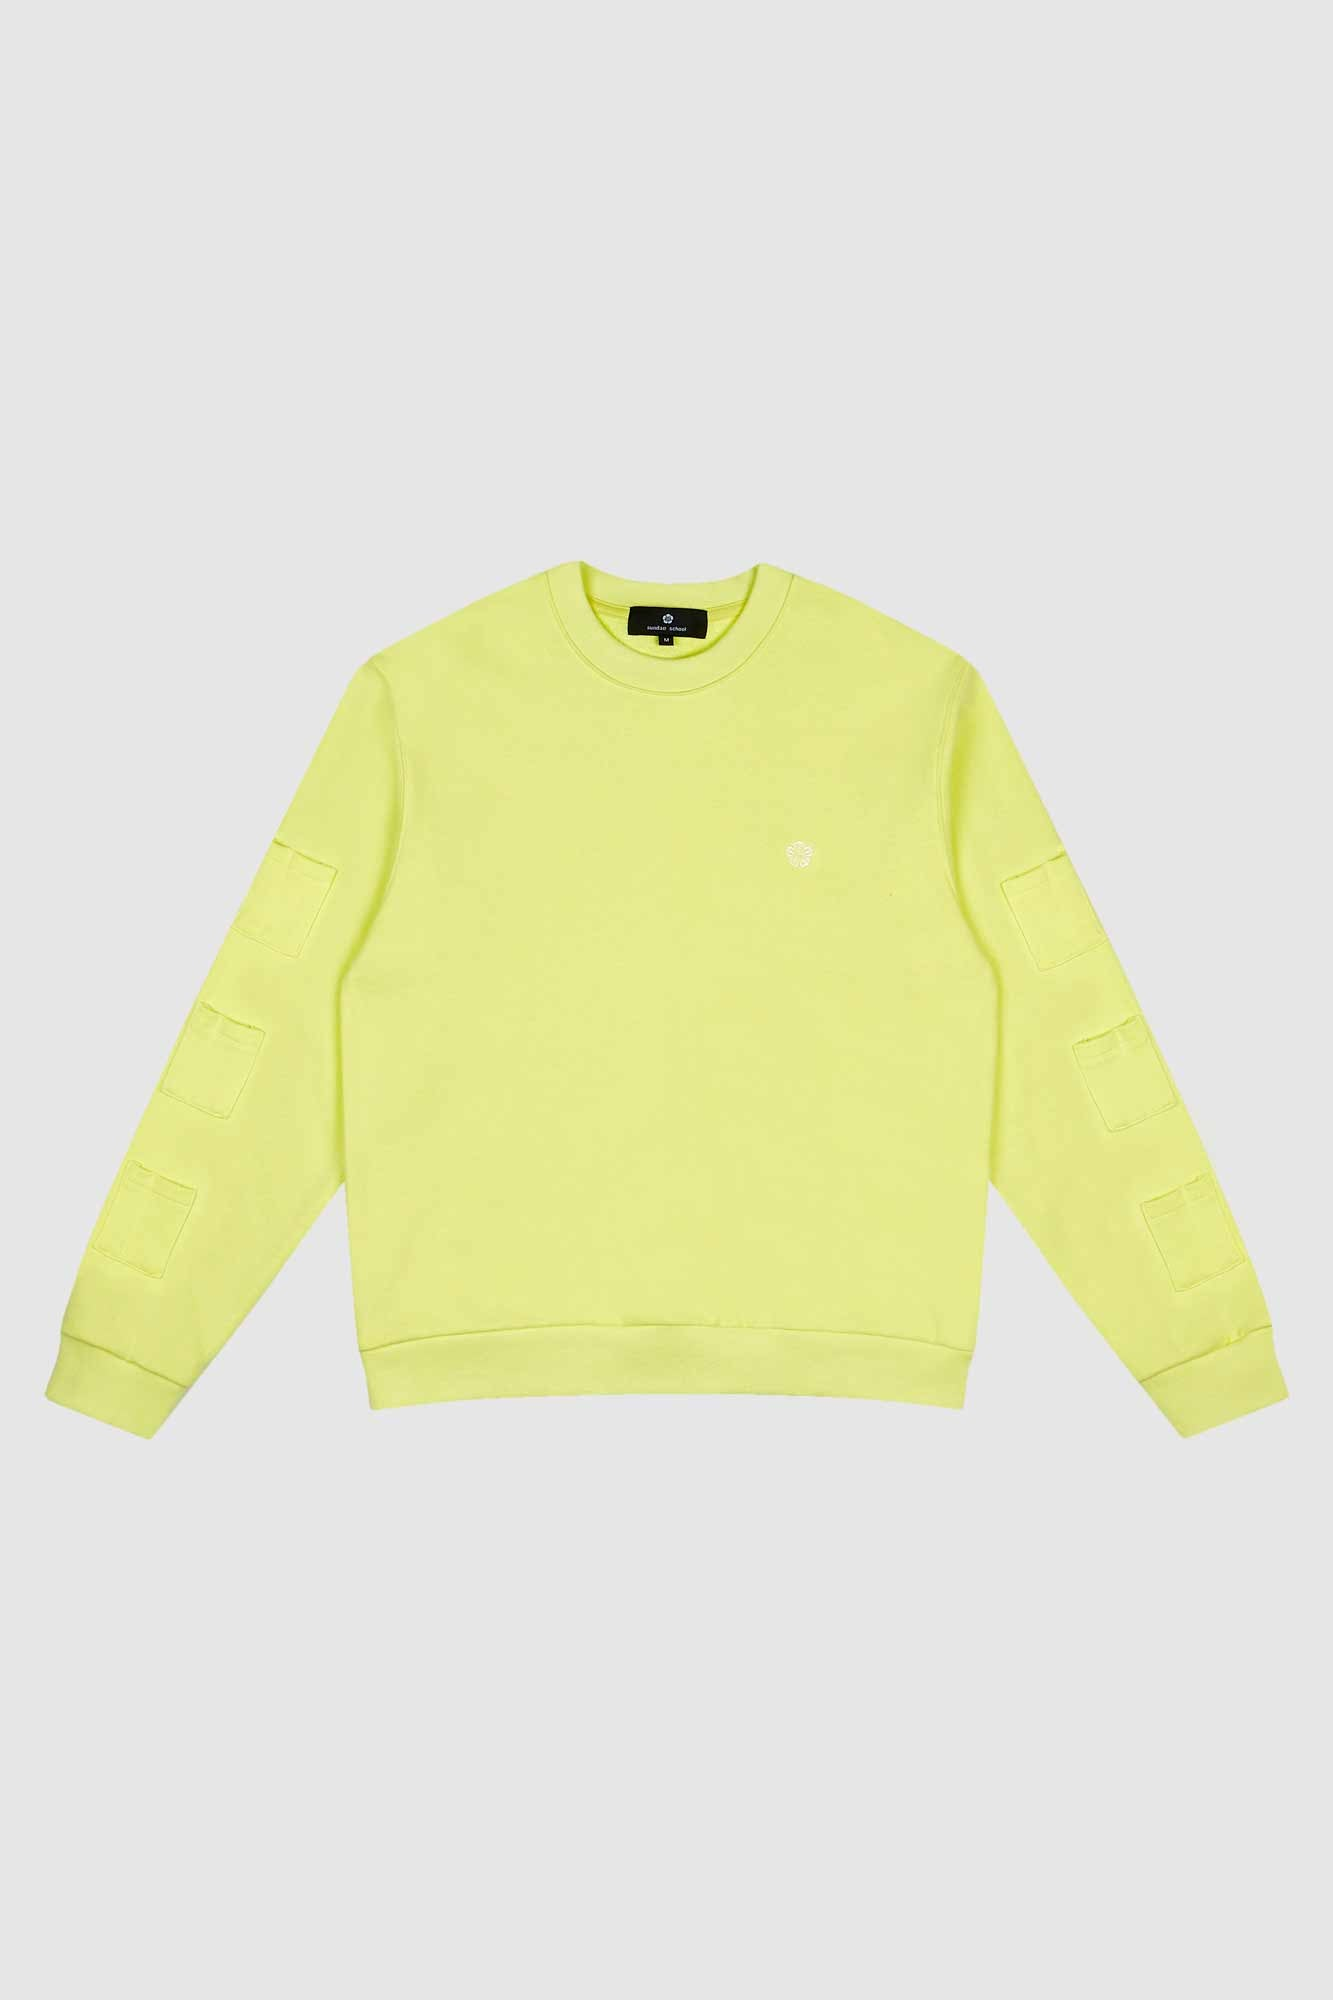 Photo of Lemonade Uniform Crewneck, number 2